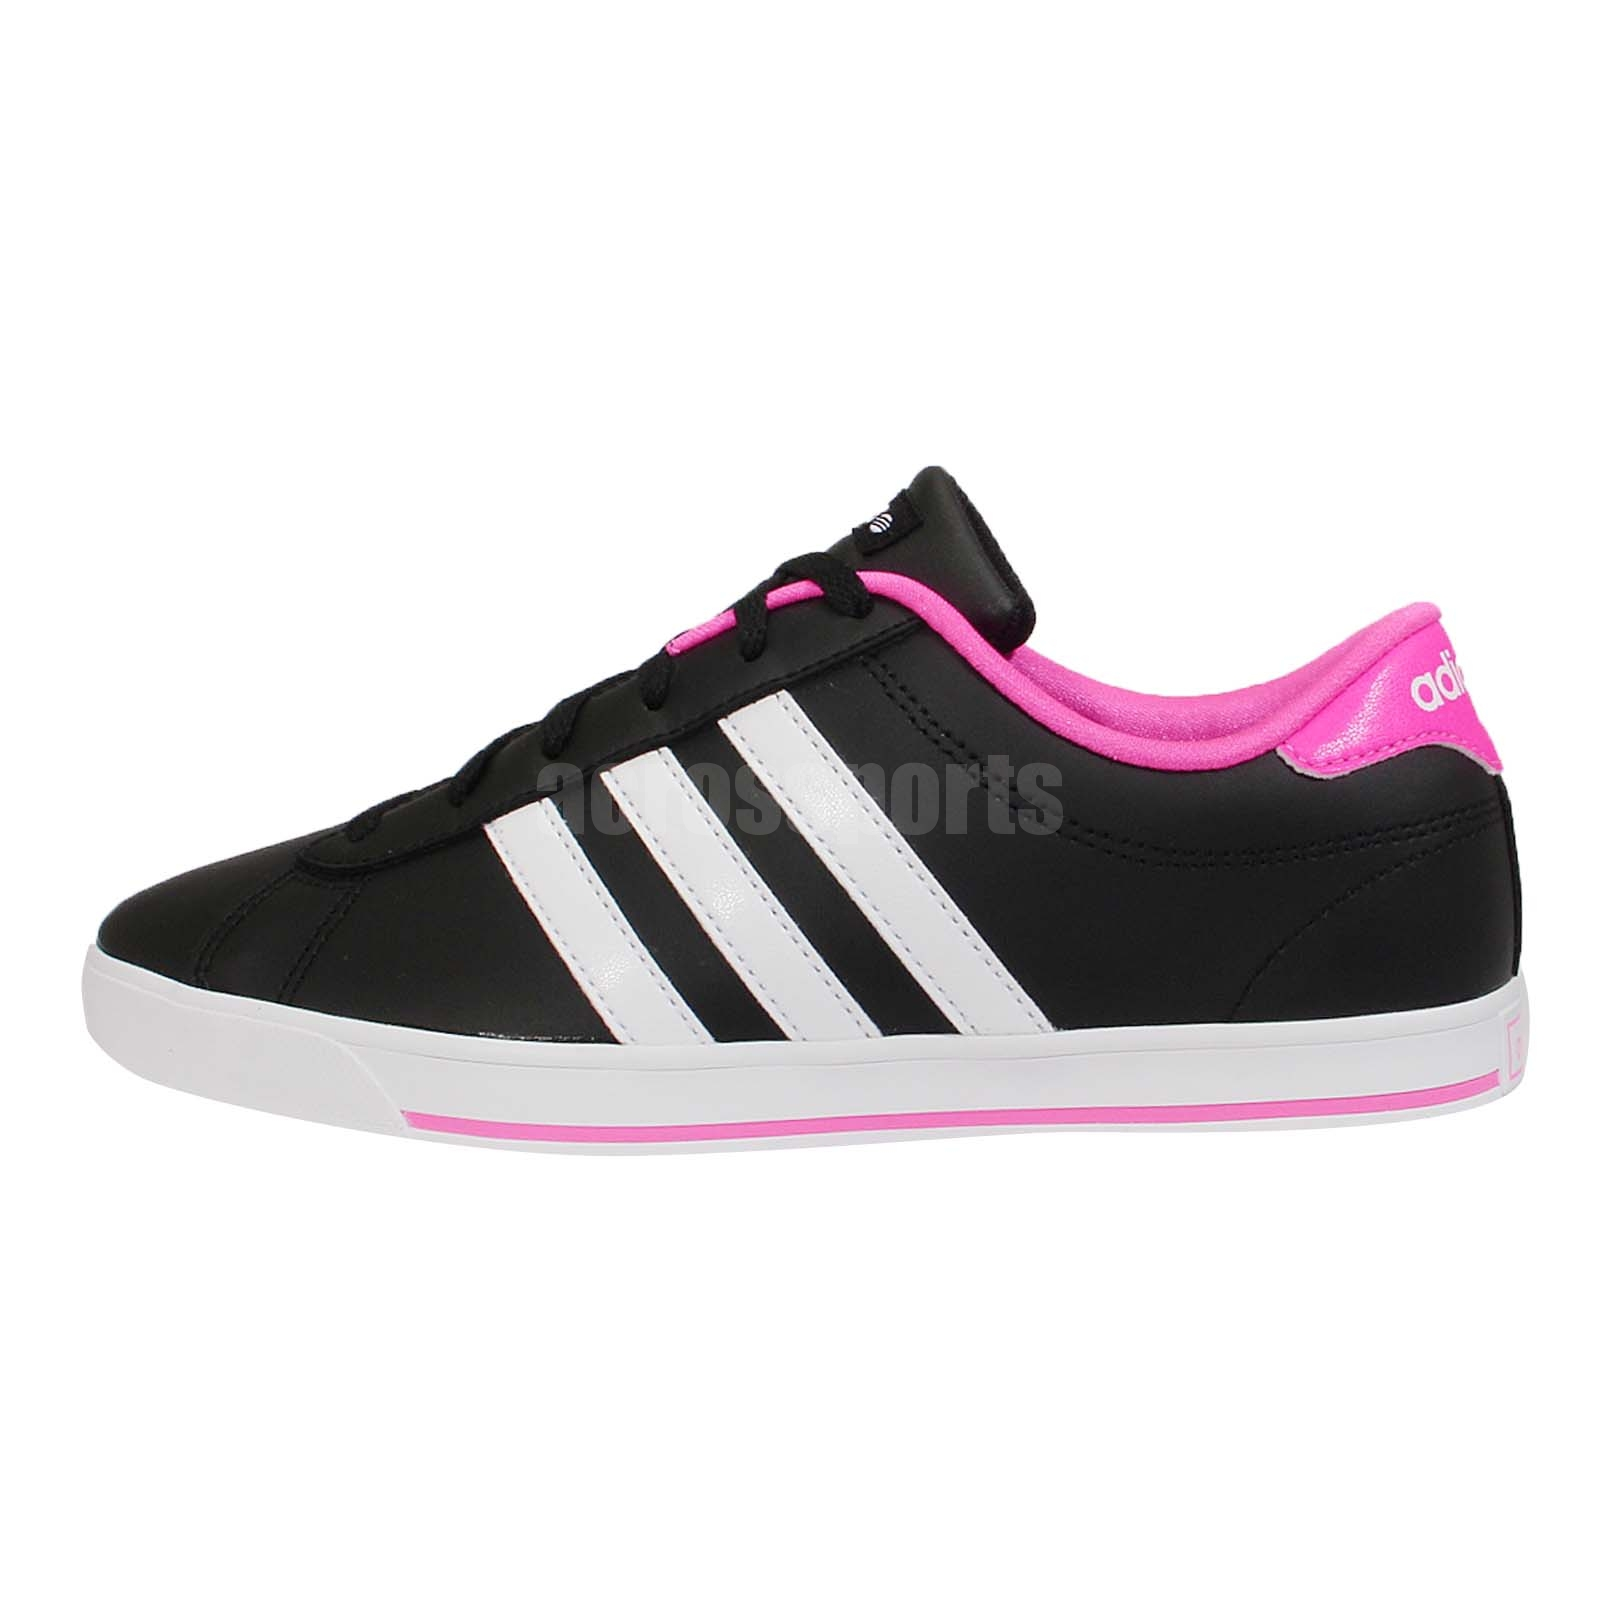 Adidas Neo Black And Pink